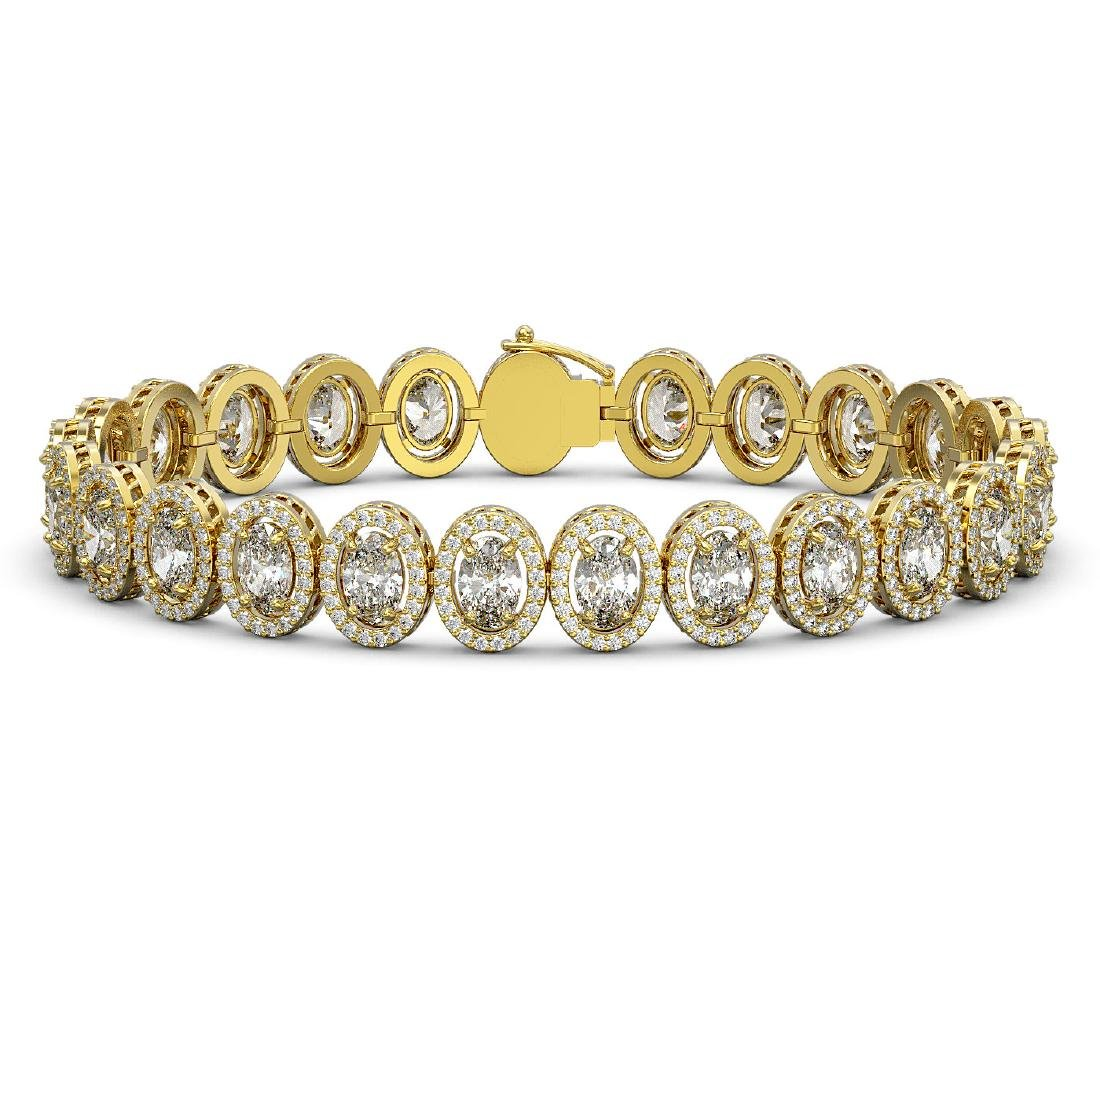 18.8 CTW Oval Diamond Designer Bracelet 18K Yellow Gold